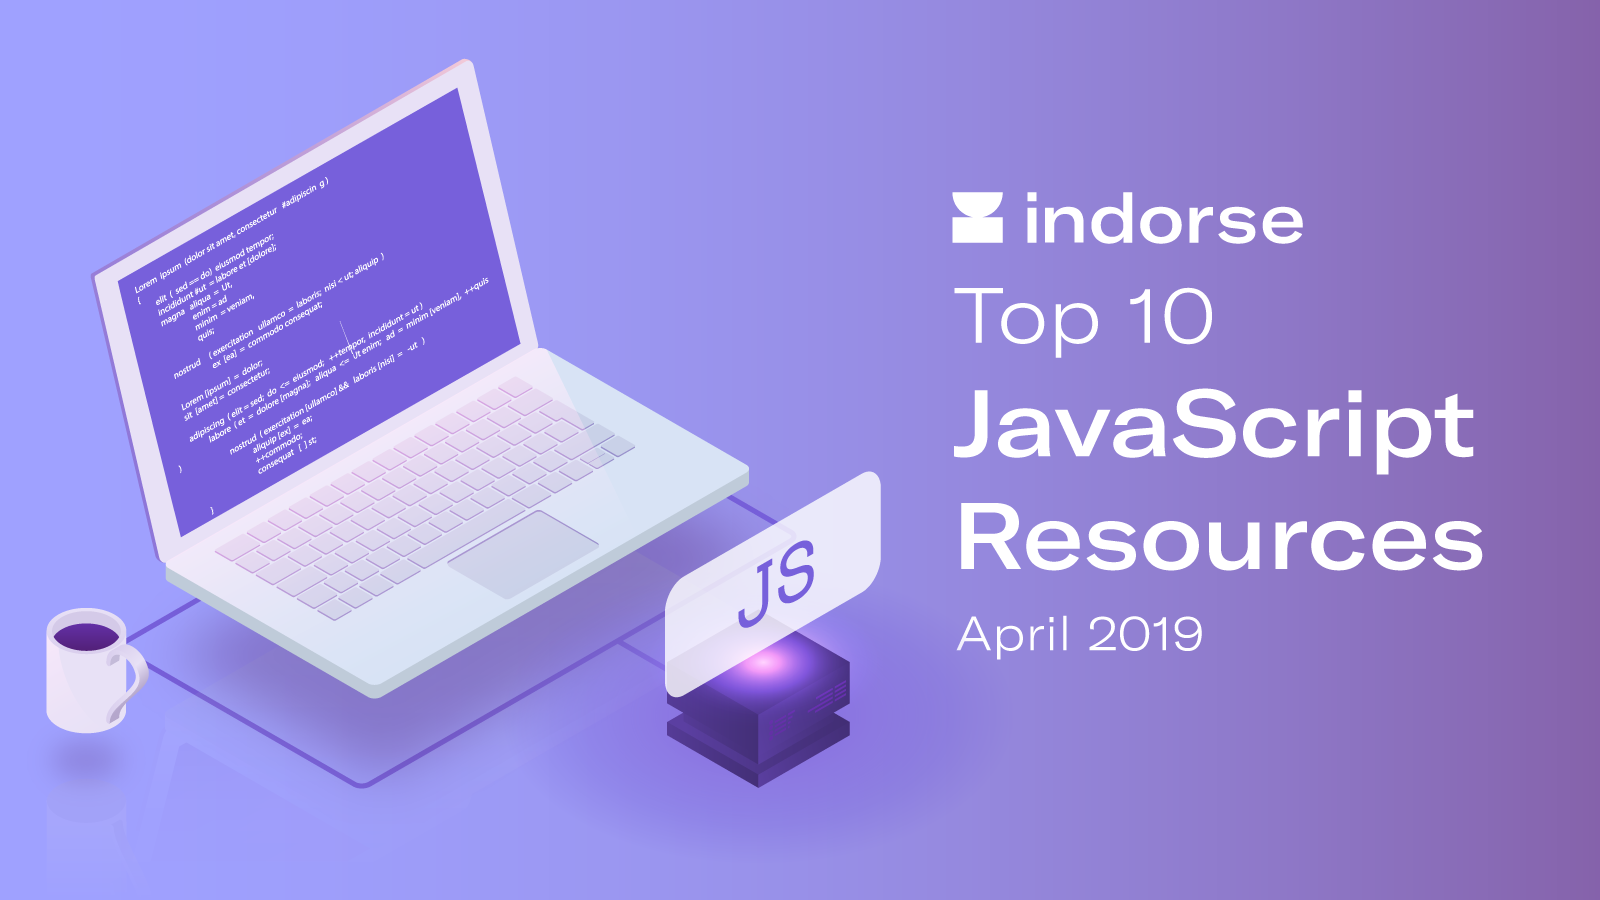 Top 10 JavaScript Resources, April 2019 - Indorse